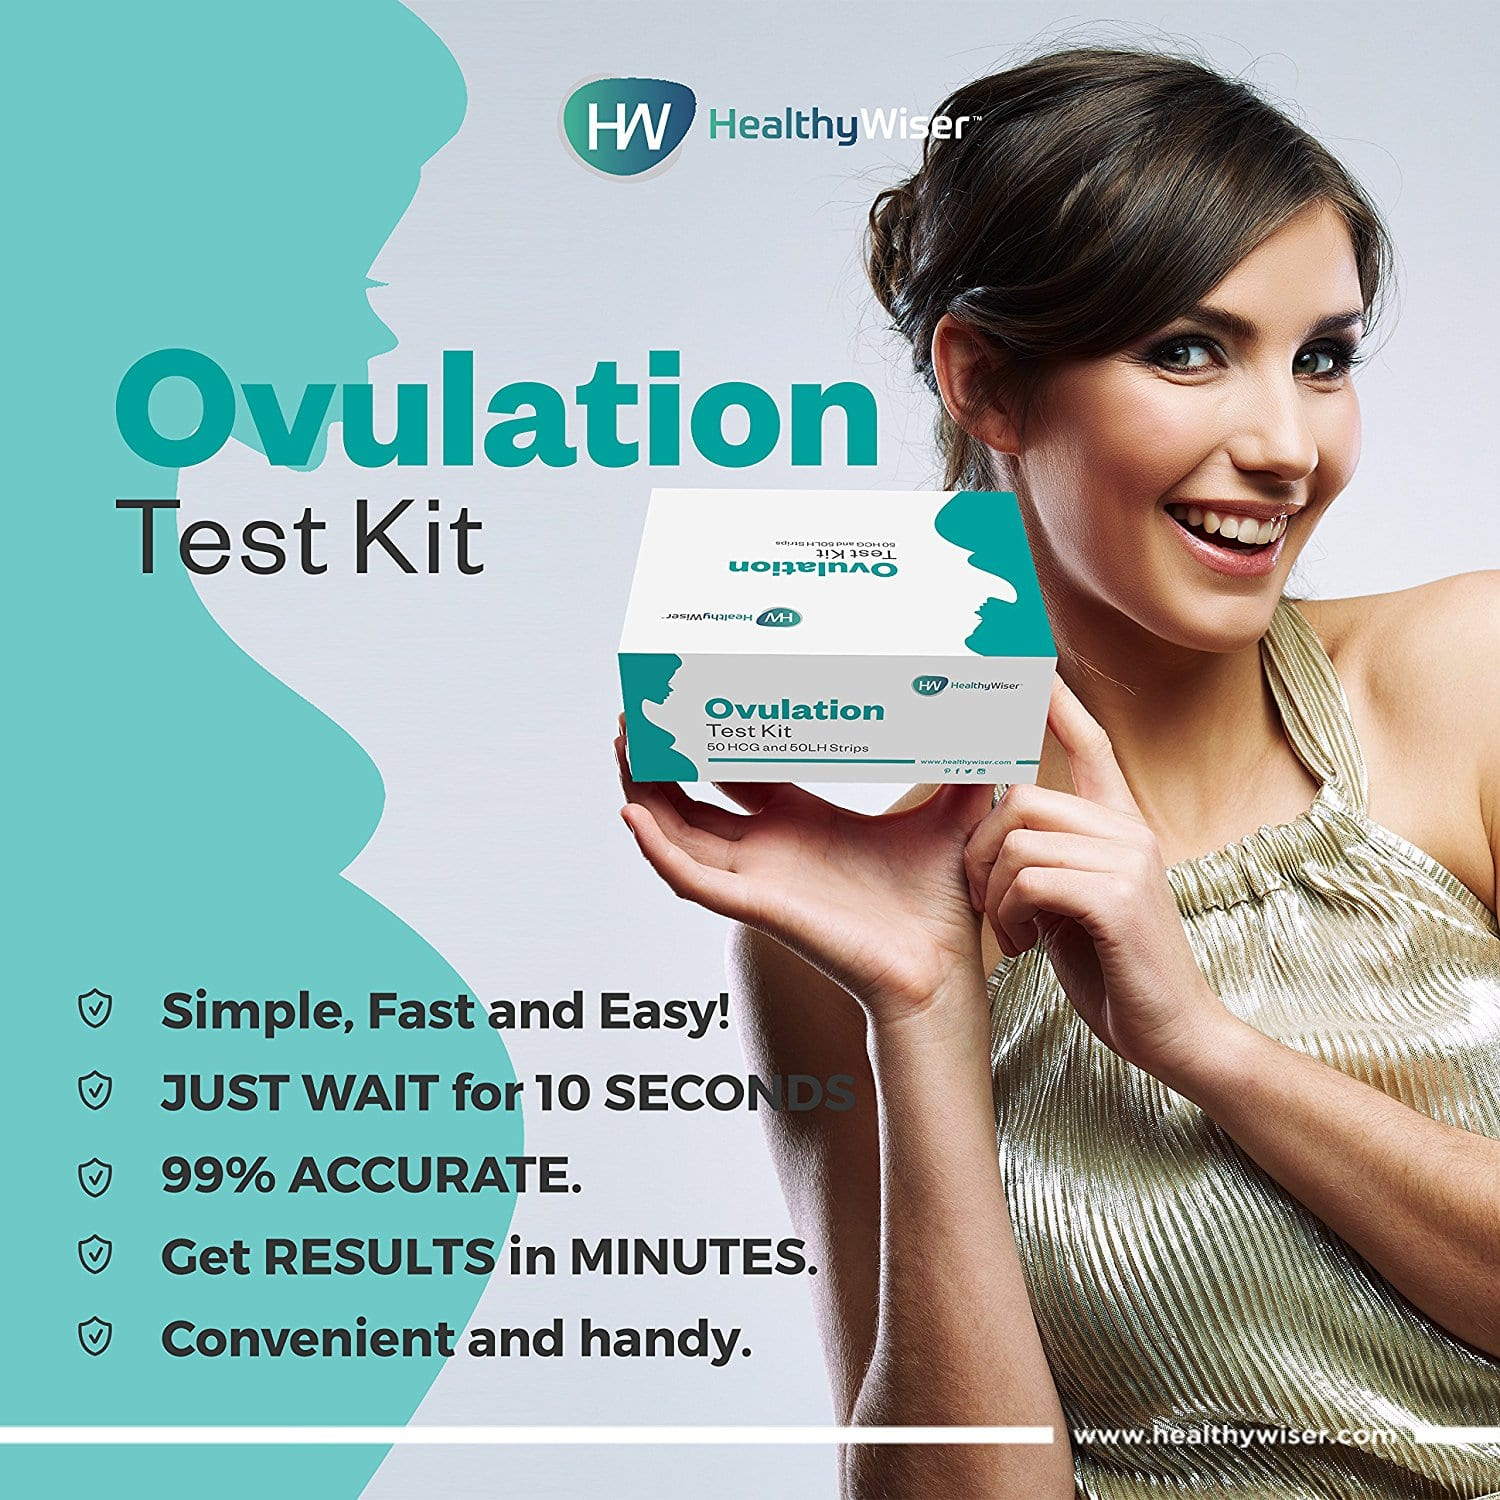 50 Pregnancy Test & 50 Ovulation Test Strips $19.91